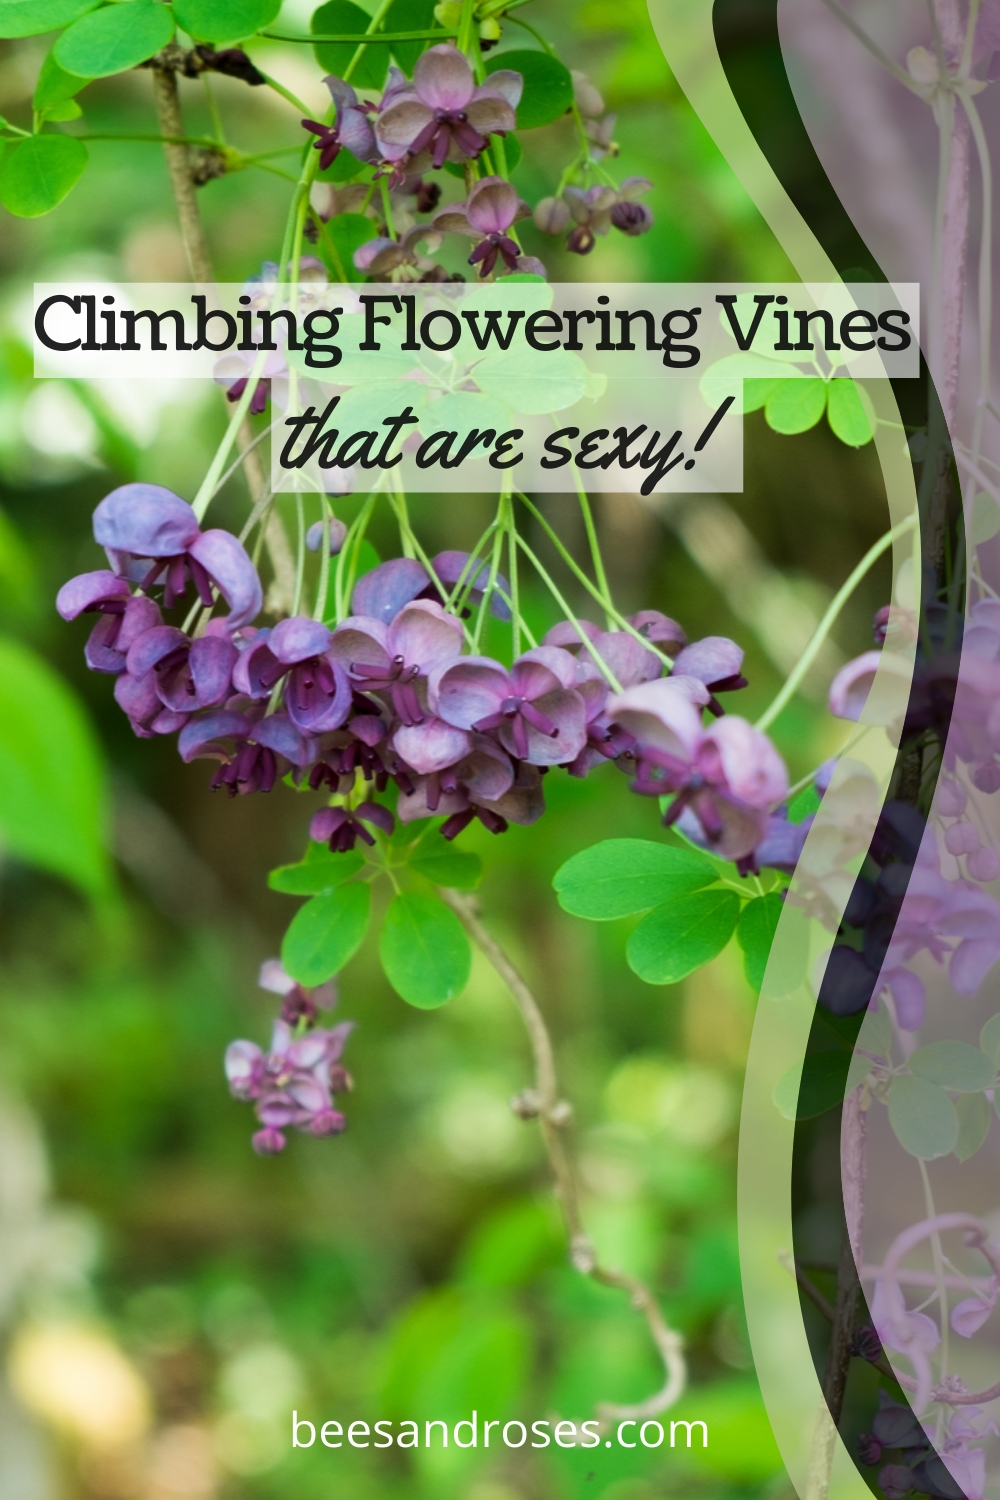 Looking to liven up your yard? Check out these five fast growing climbing perennial vines. These all look stunning and you'll appreciate how fast they grow! #beesandrosesblog #garden #perennialgardening